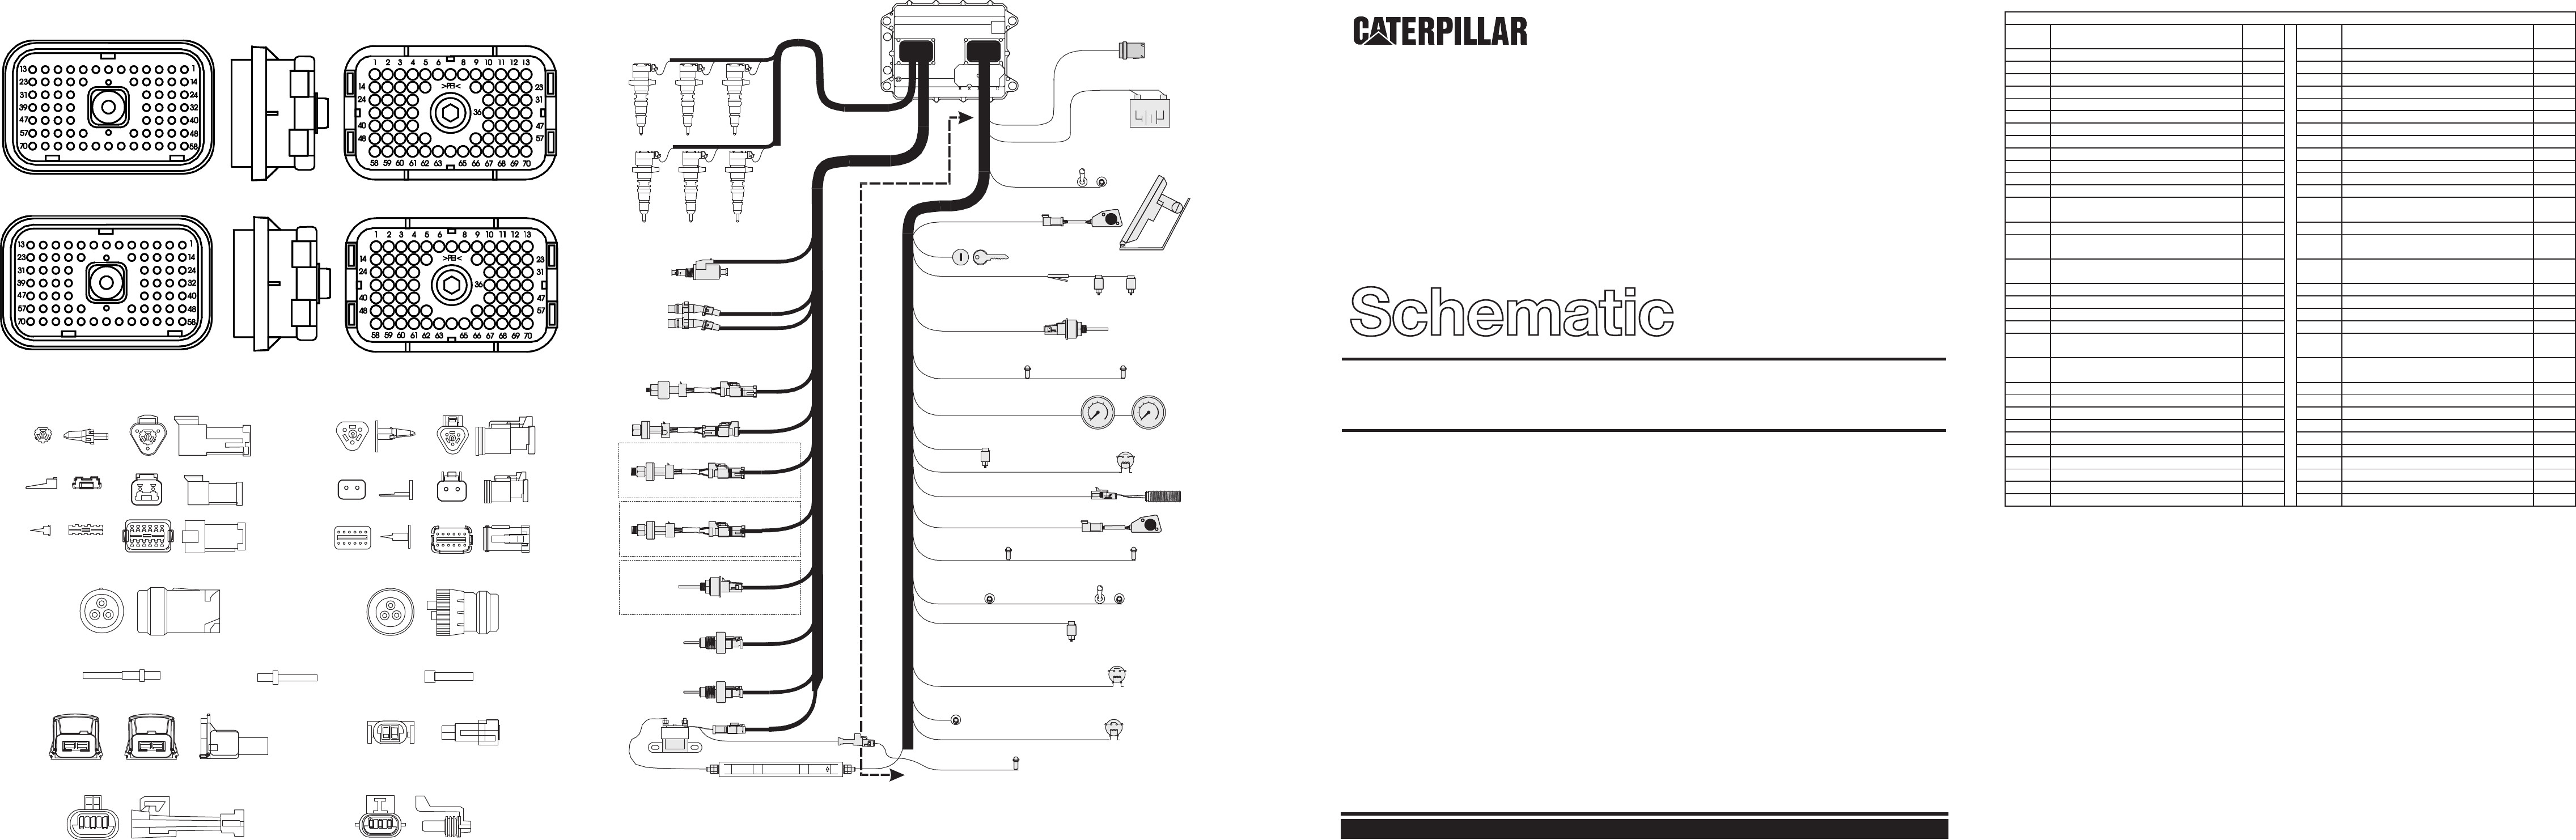 Cat C9 Wiring Diagram | Wiring Diagram